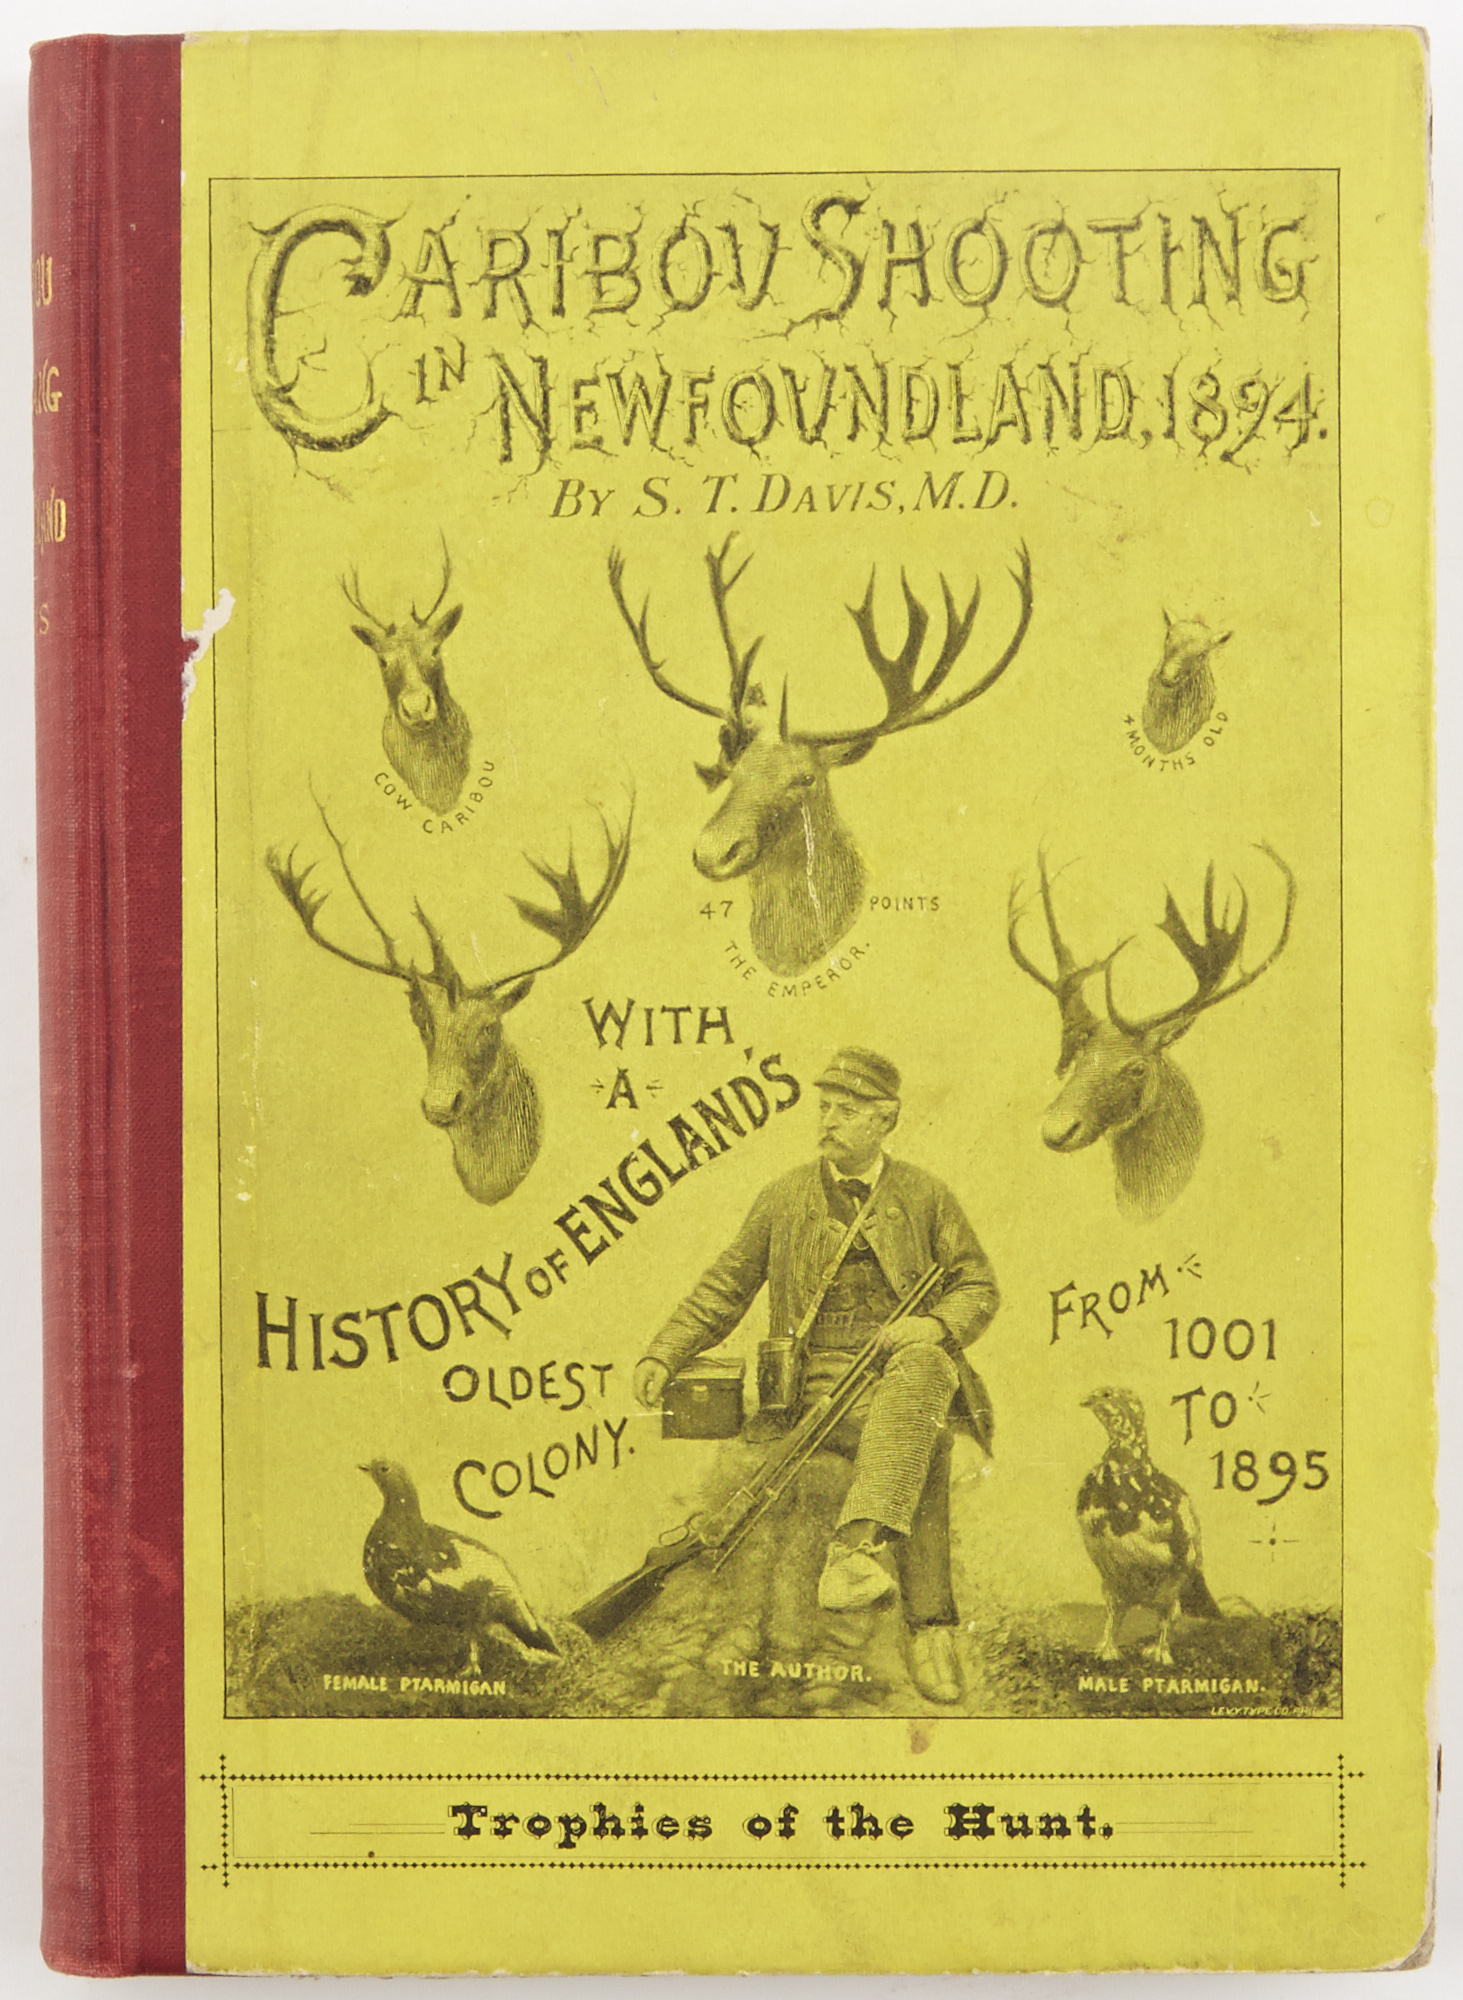 Lot image - DAVIS, SAMUEL T.  Caribou Shooting in Newfoundland: With a History of Englands Oldest Colony from 1001 to 1895.